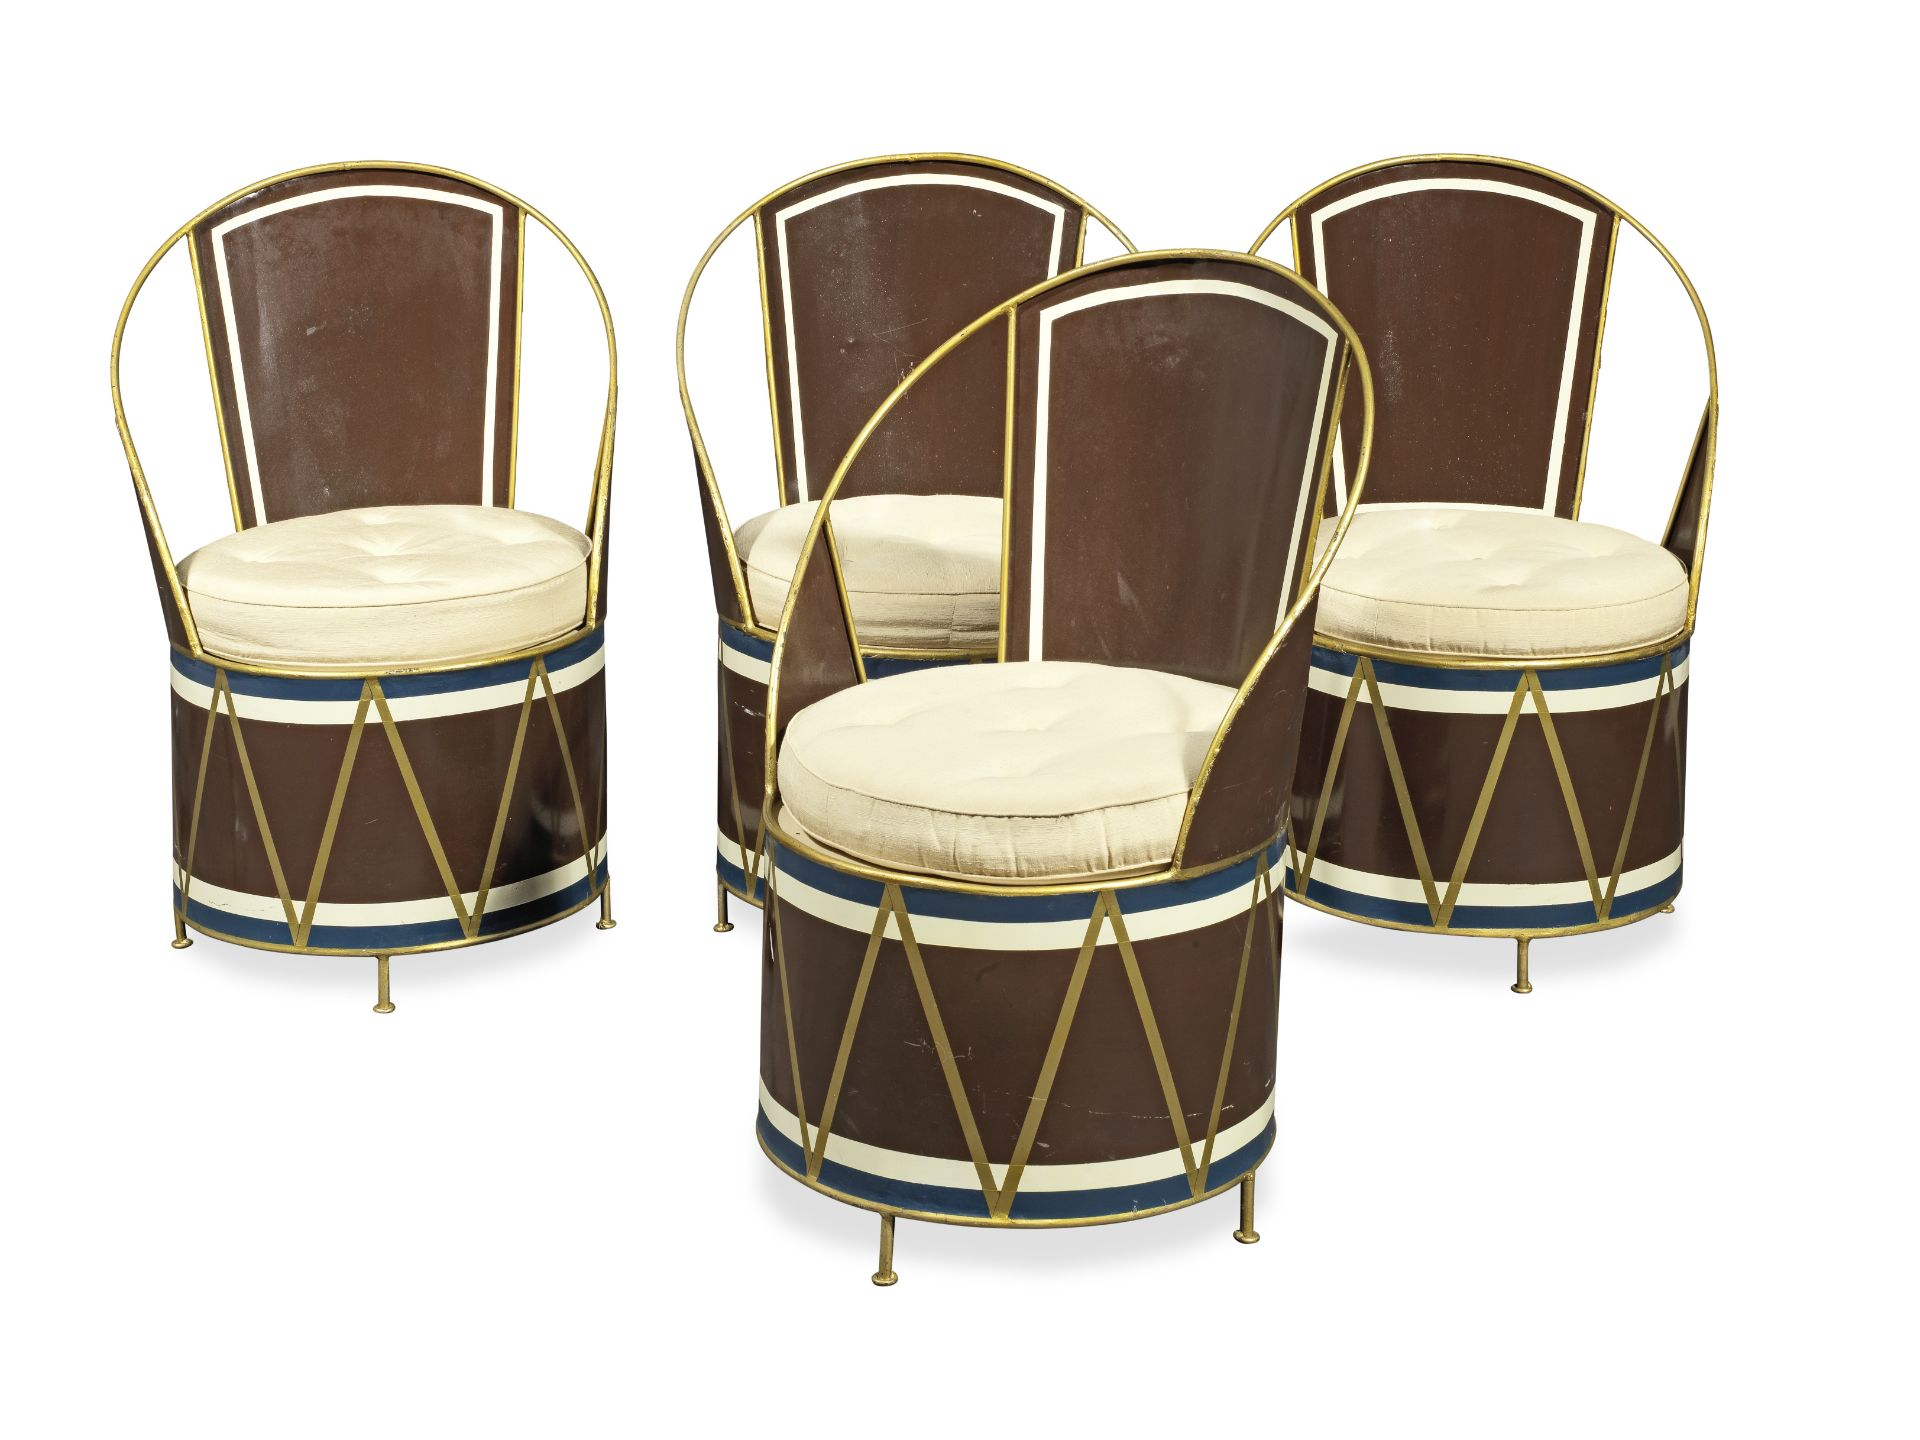 A set of four tole peinte 'drum' chairs after the model by Cecil Beaton (4) - Image 2 of 3